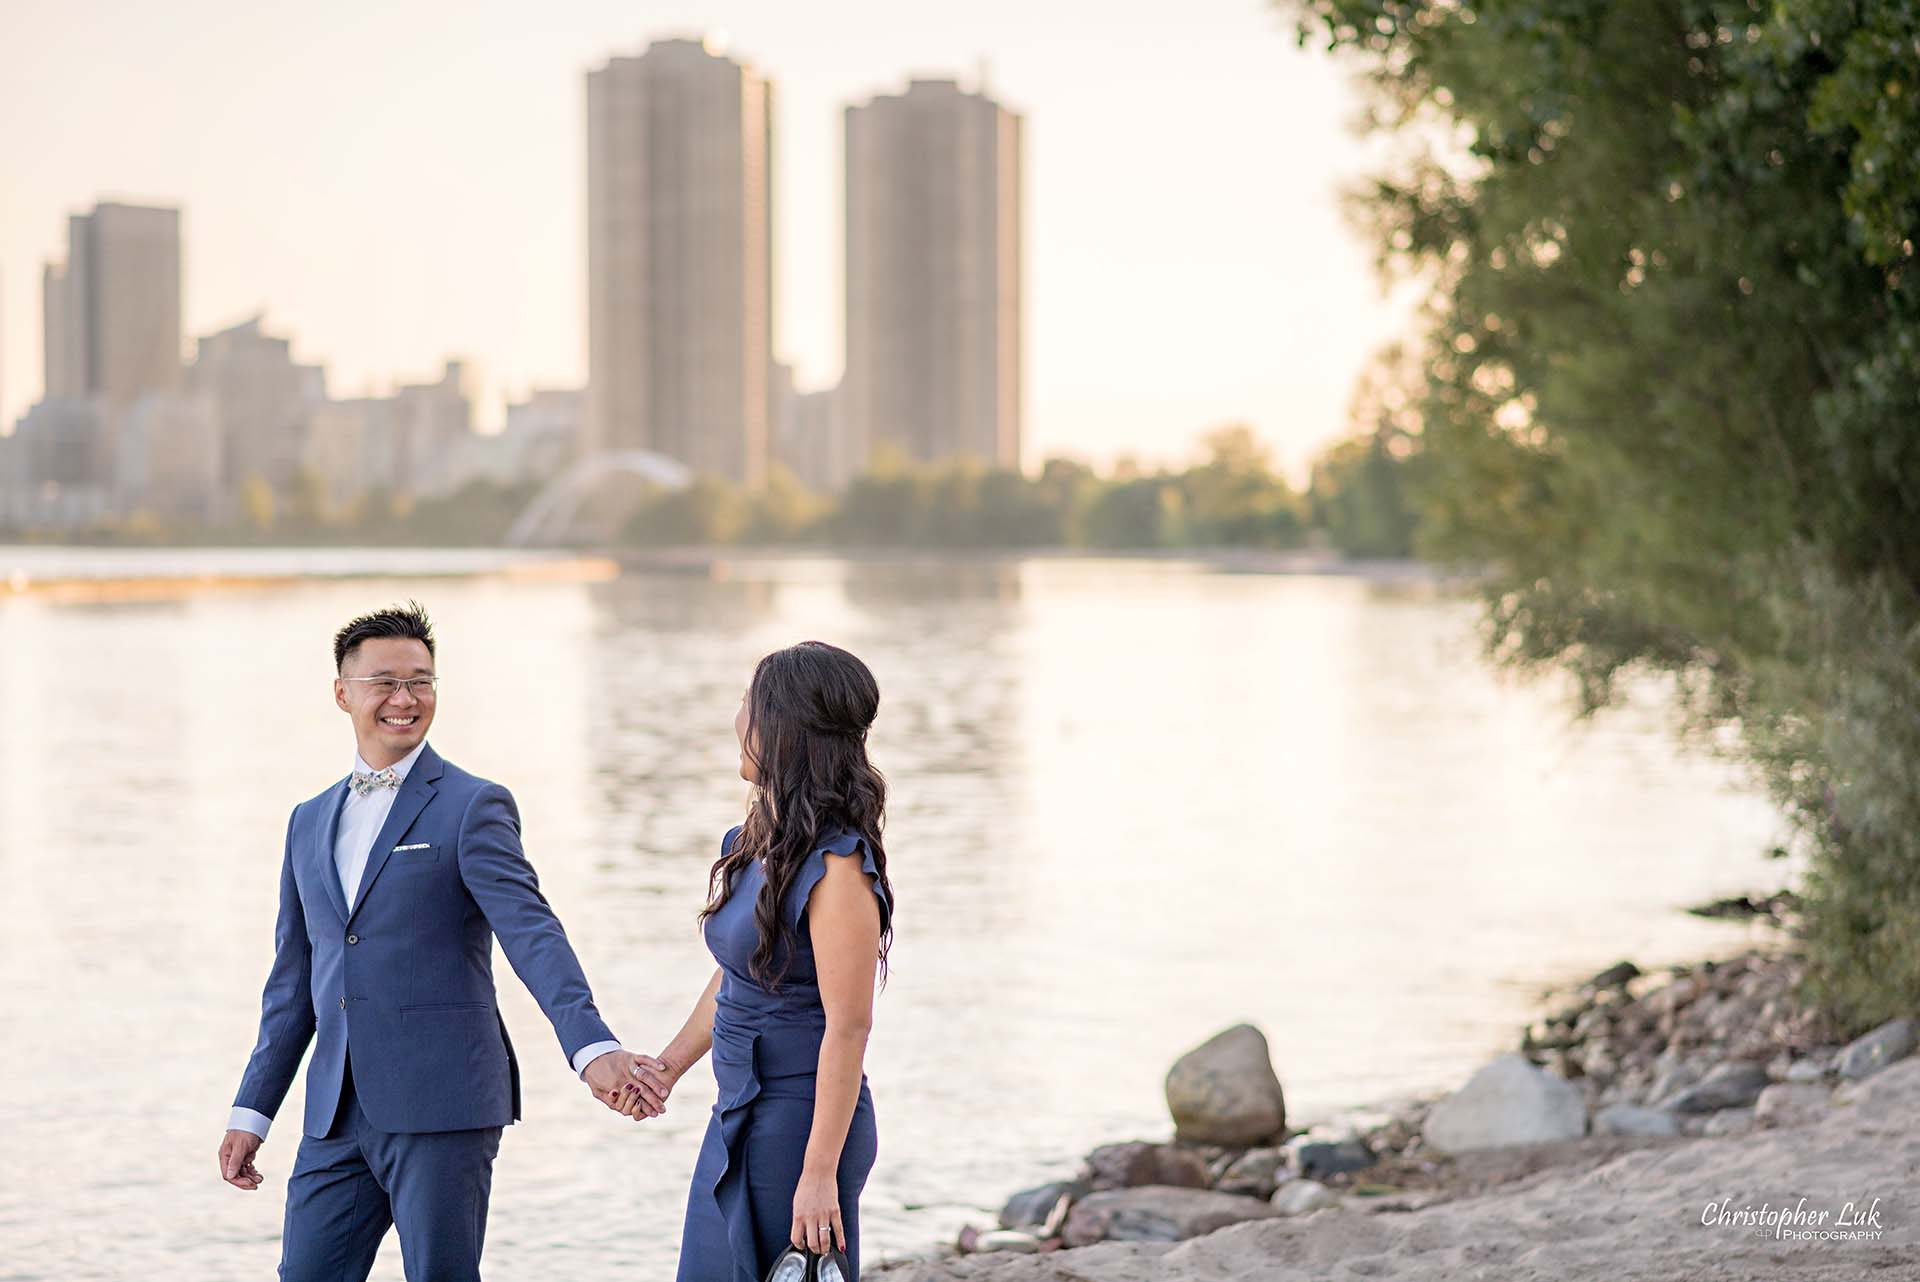 Christopher Luk Toronto Wedding Photographer - Engagement Photography - Sunnyside Pavilion Park Beach Boardwalk Toronto - Bride and Groom Natural Candid Photojournalistic Humber Bay Archway Arch Bridge Skyline Walking Smile